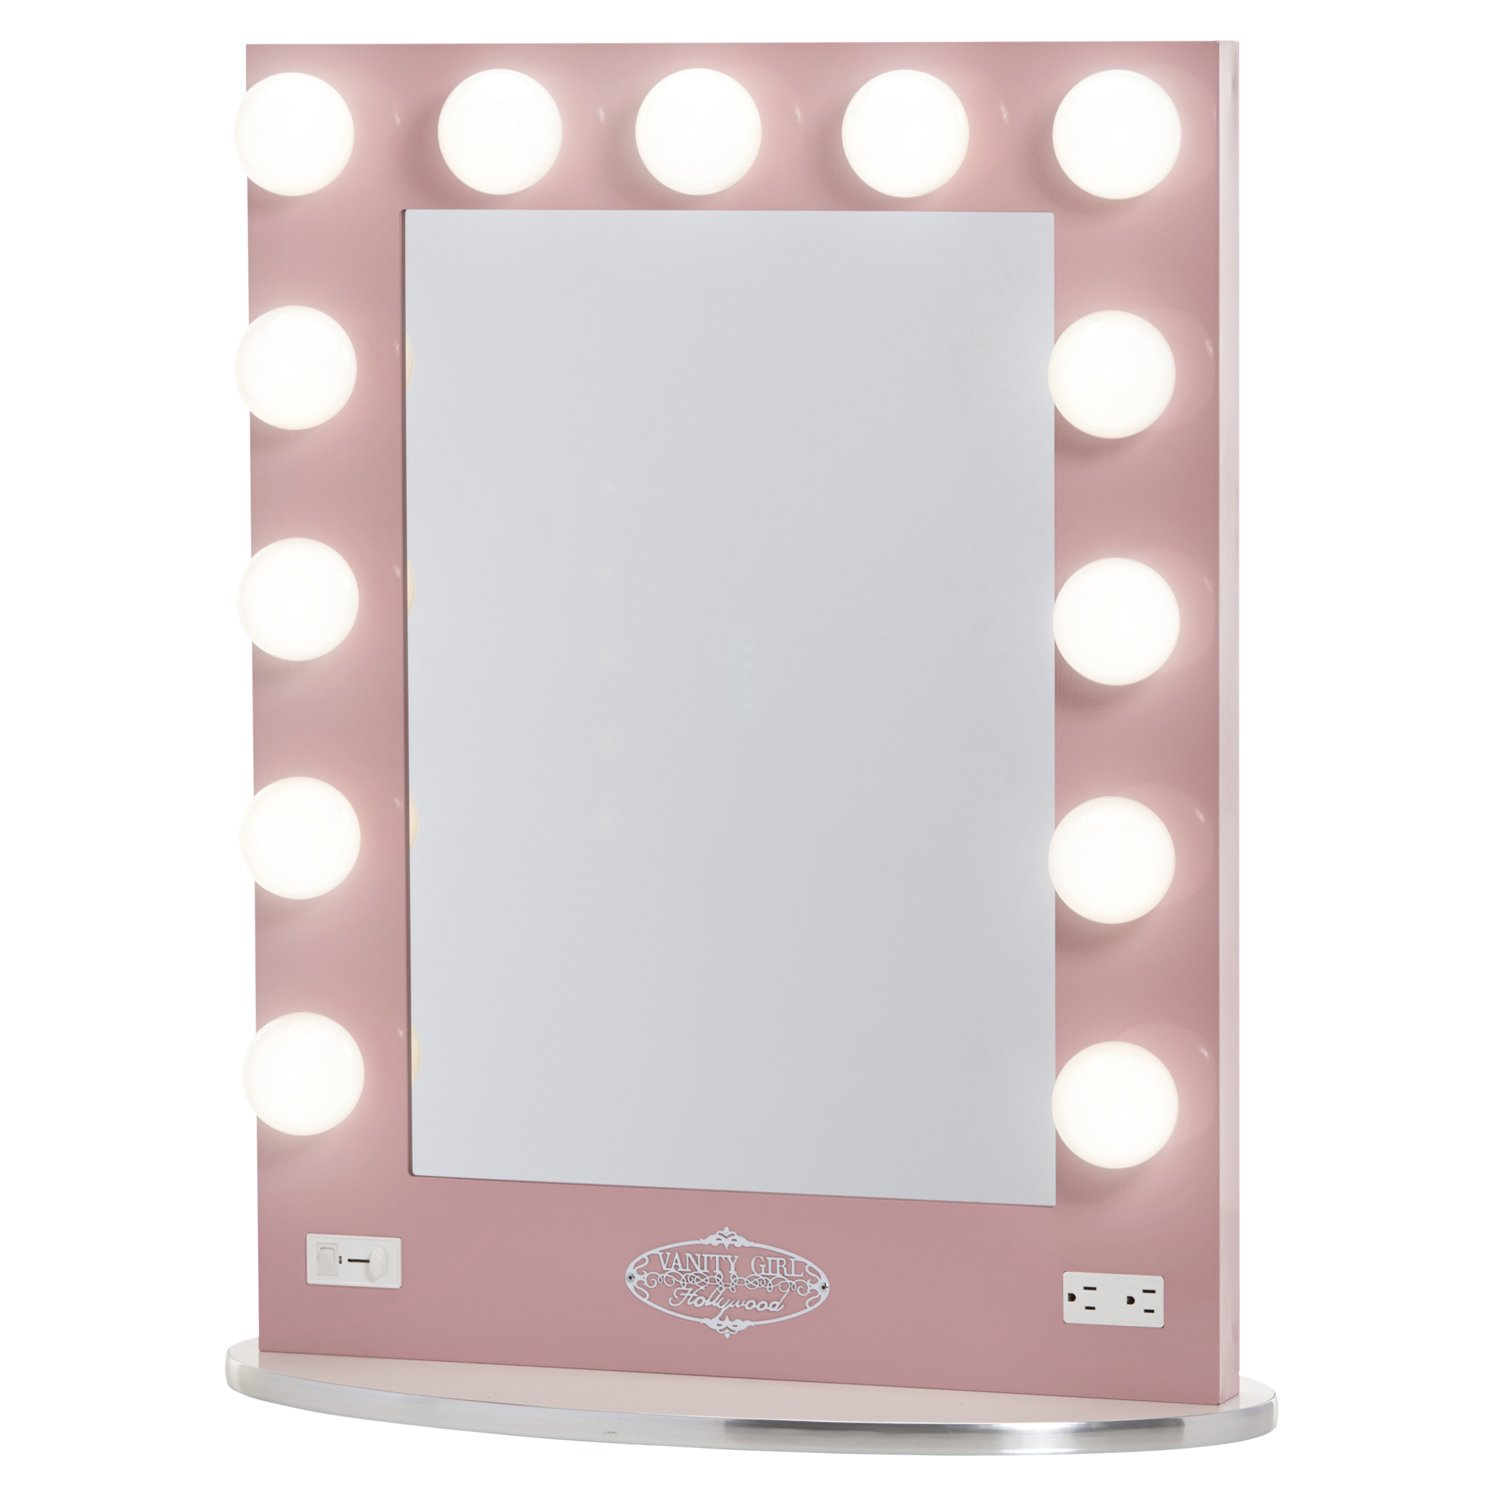 Amazon com  Broadway Lighted Vanity Mirror   Gloss Pink  Amazon LaunchpadAmazon com  Broadway Lighted Vanity Mirror   Gloss Pink  Amazon  . Best Vanity Mirror For Makeup. Home Design Ideas